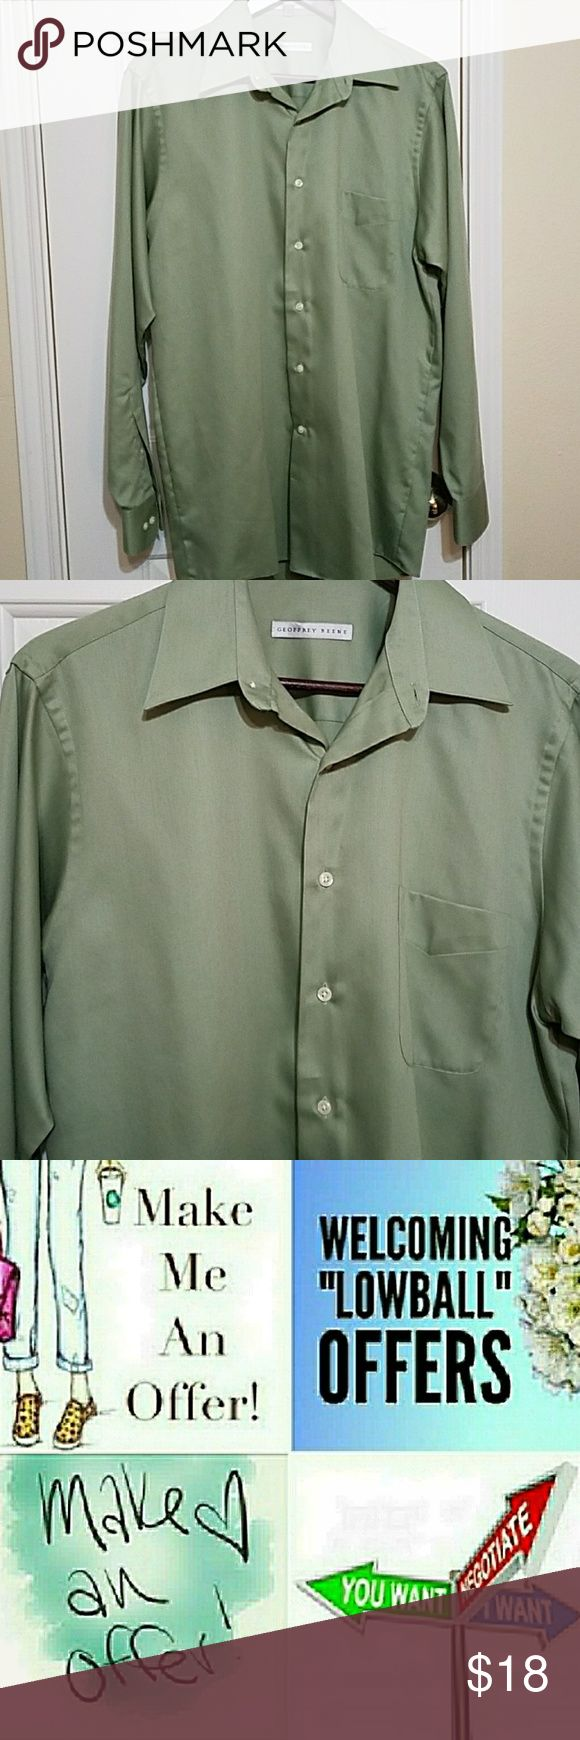 Geoffrey Beene Dress Shirt Button down long sleeve dress shirt In excellent condition  1st picture is truest to color Neck size 15.5 Size 34/35 Geoffrey Beene Shirts Dress Shirts